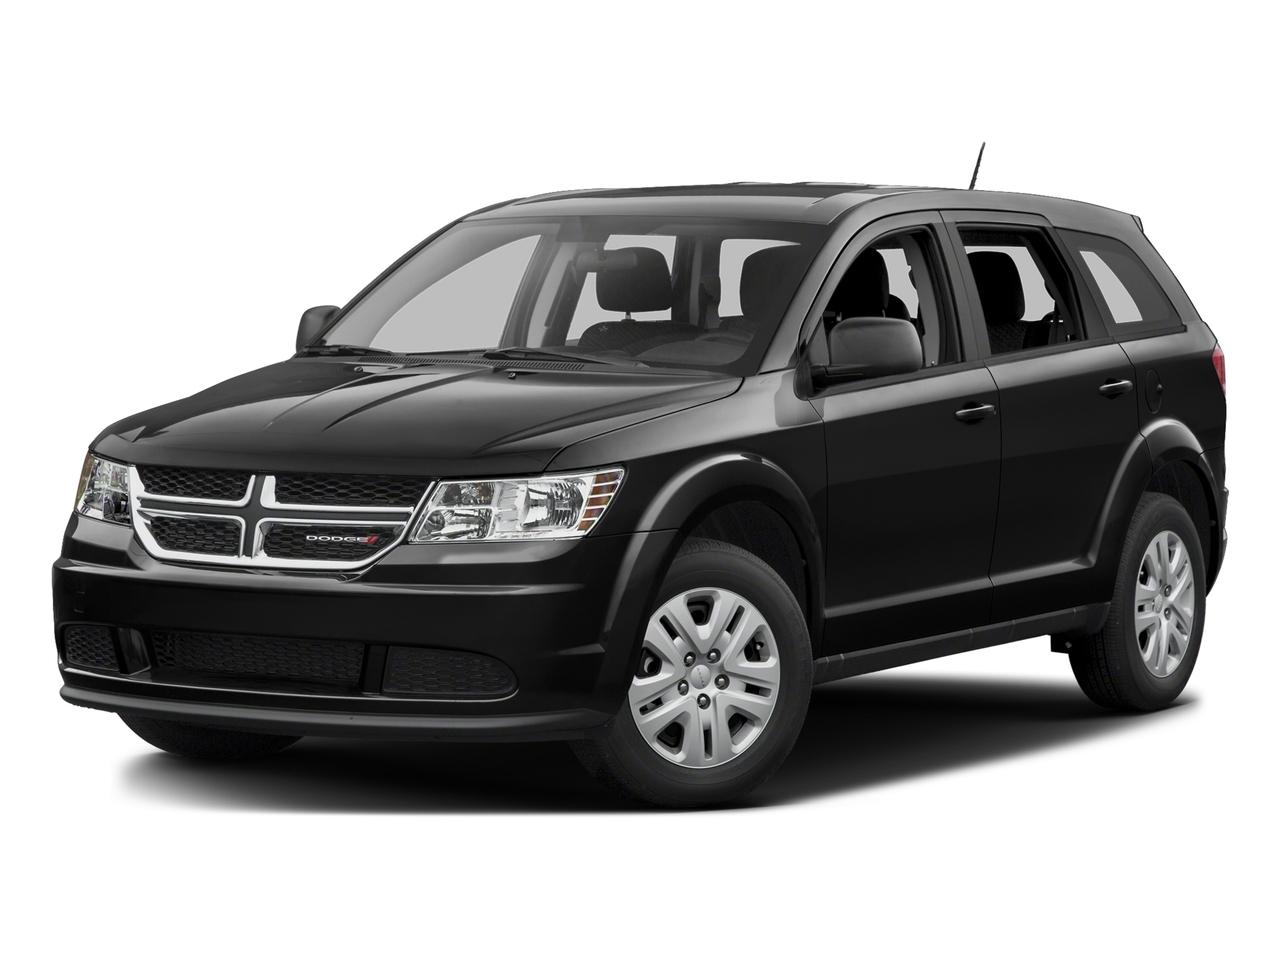 2017 Dodge Journey Vehicle Photo in Jenkintown, PA 19046